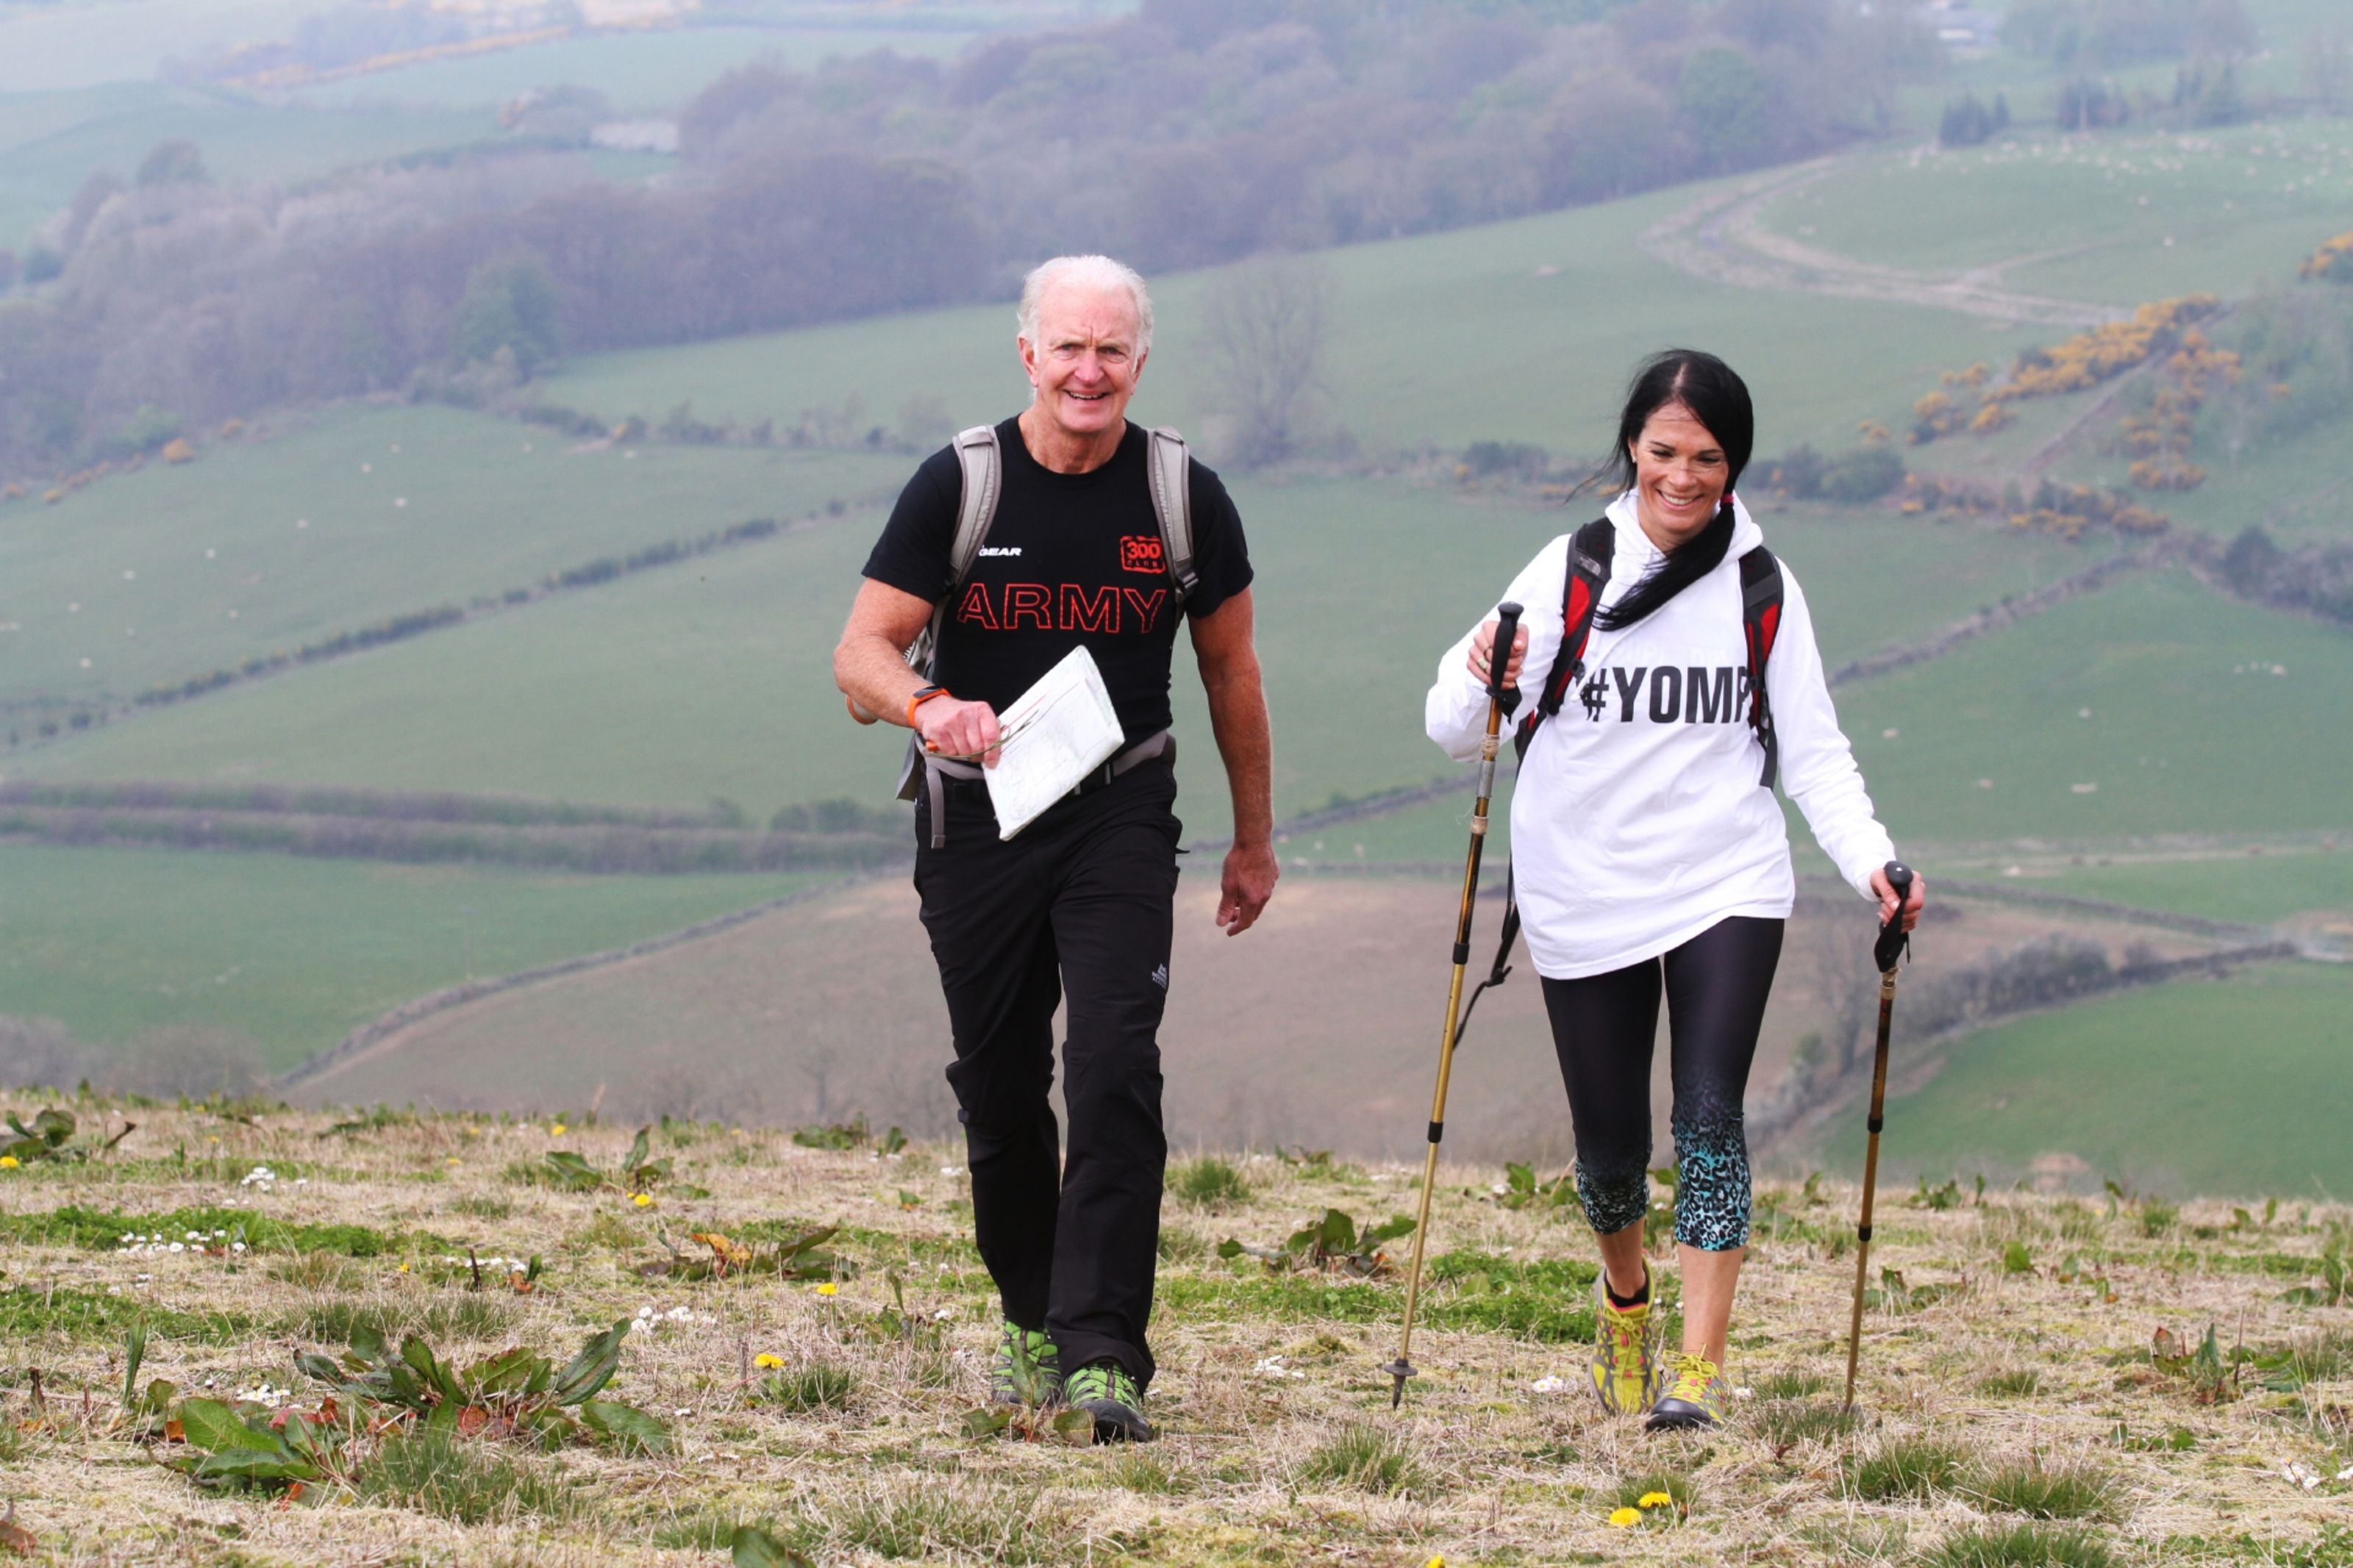 Yomp boot camp trainer Mike Mooney shows Gayle how to use walking poles effectively.